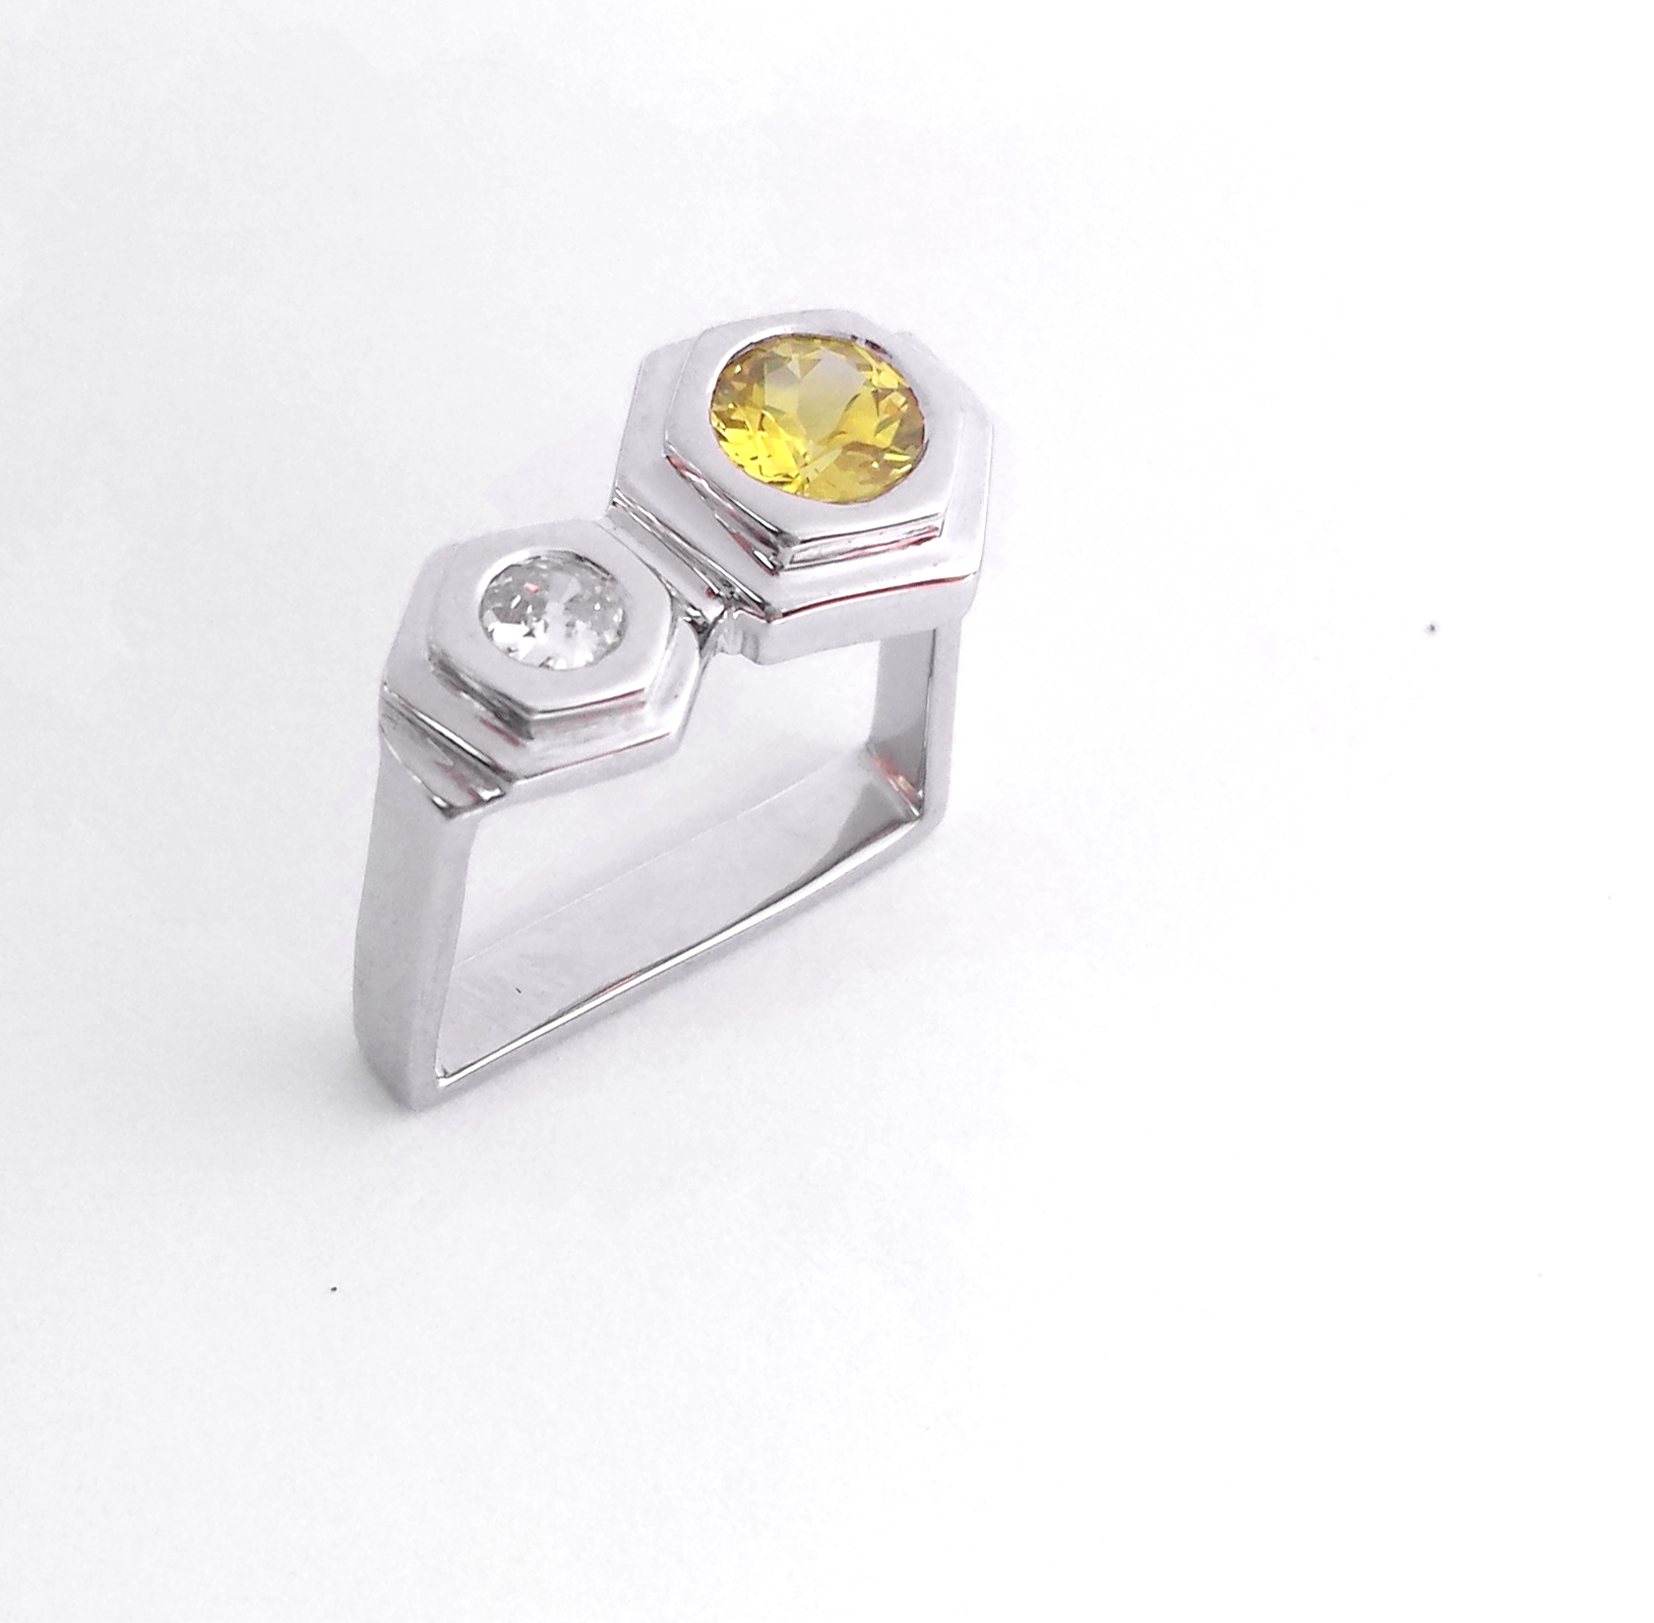 commemorative_jewellery_contemporary_design_yellow_sapphire_ring_doamond